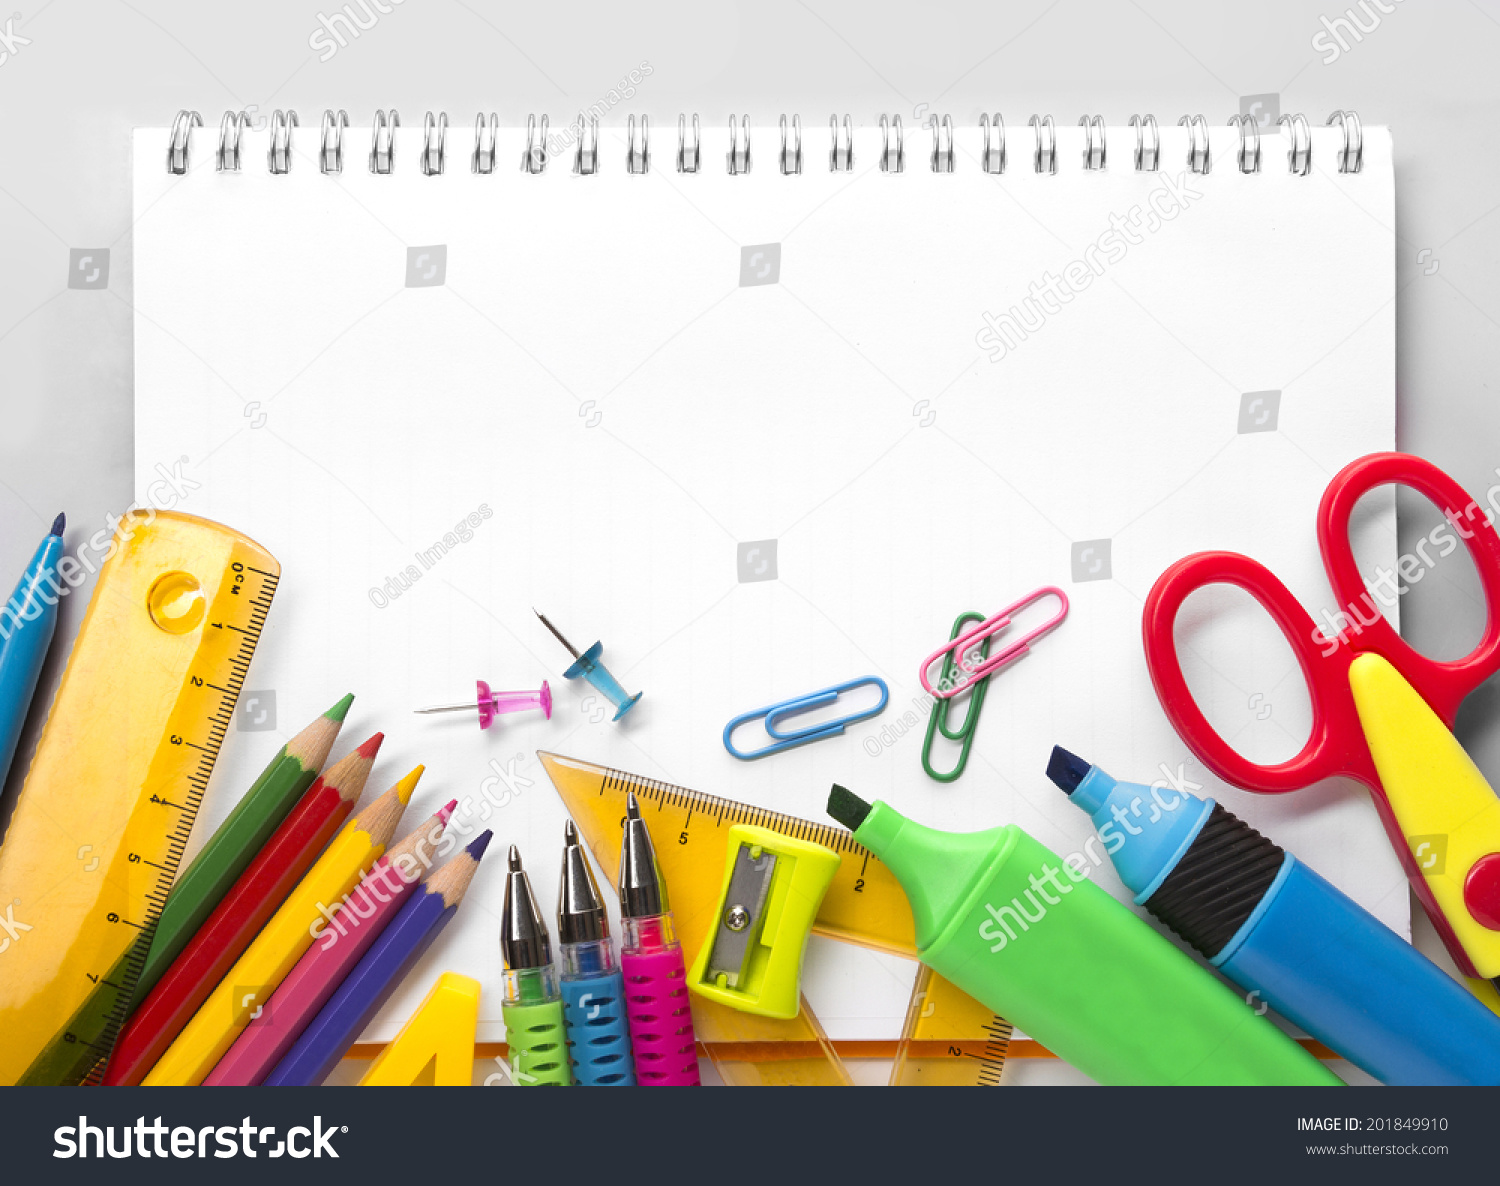 Px Colourbox also Stock Photo School Supplies On White Background Ready For Your Design moreover Blue Rilakkuma Bear Alphabet Notepad Exercise Book together with Cute Mouse Notepad With French Theme From Japan moreover Teachernotes Thumb. on back to school notepad supplies